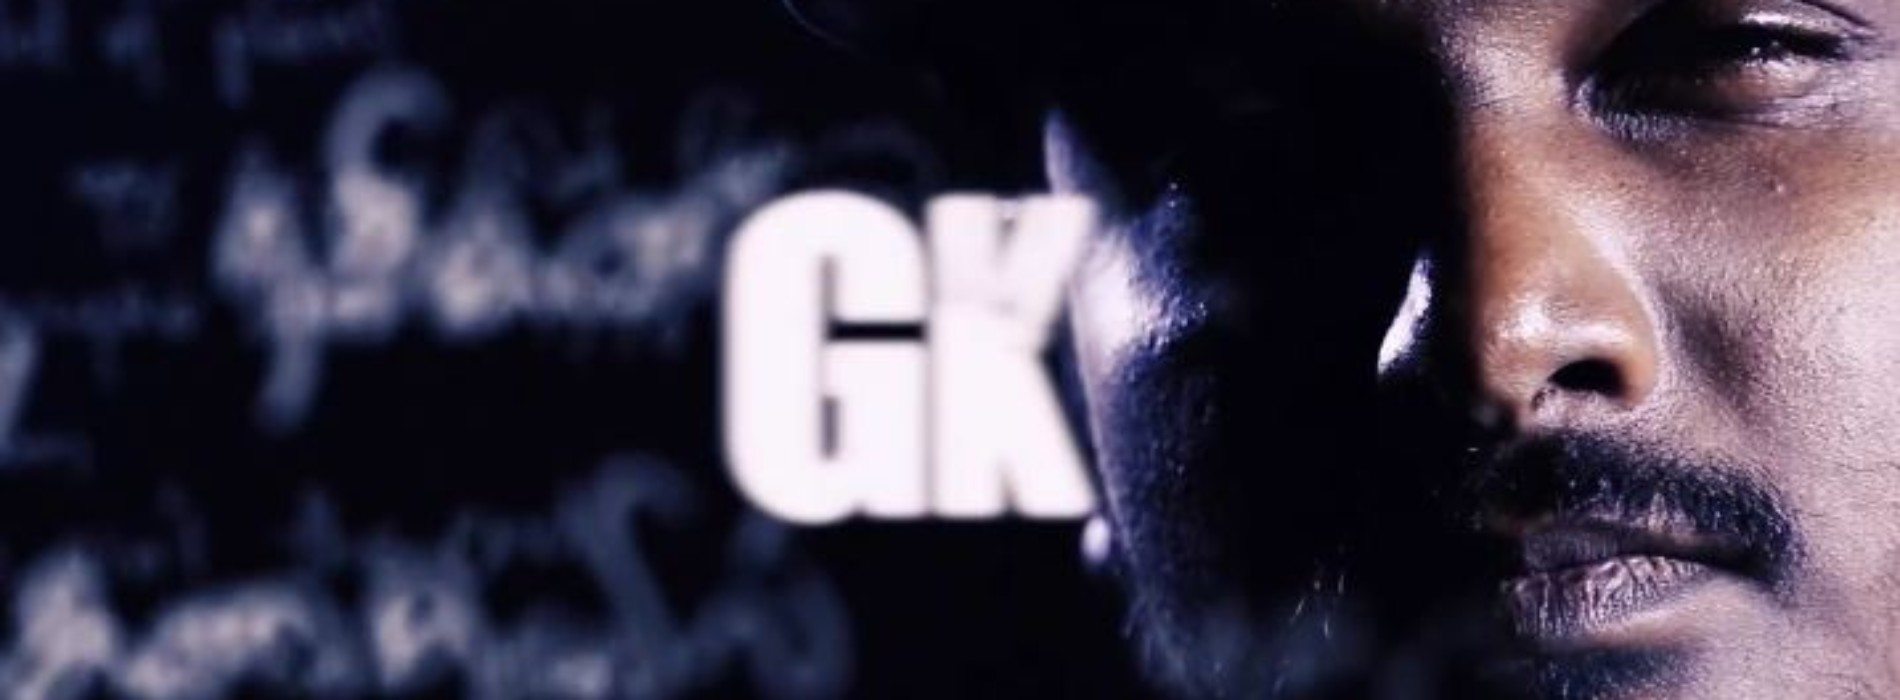 GK – Plastic Bags (Official Music Video)